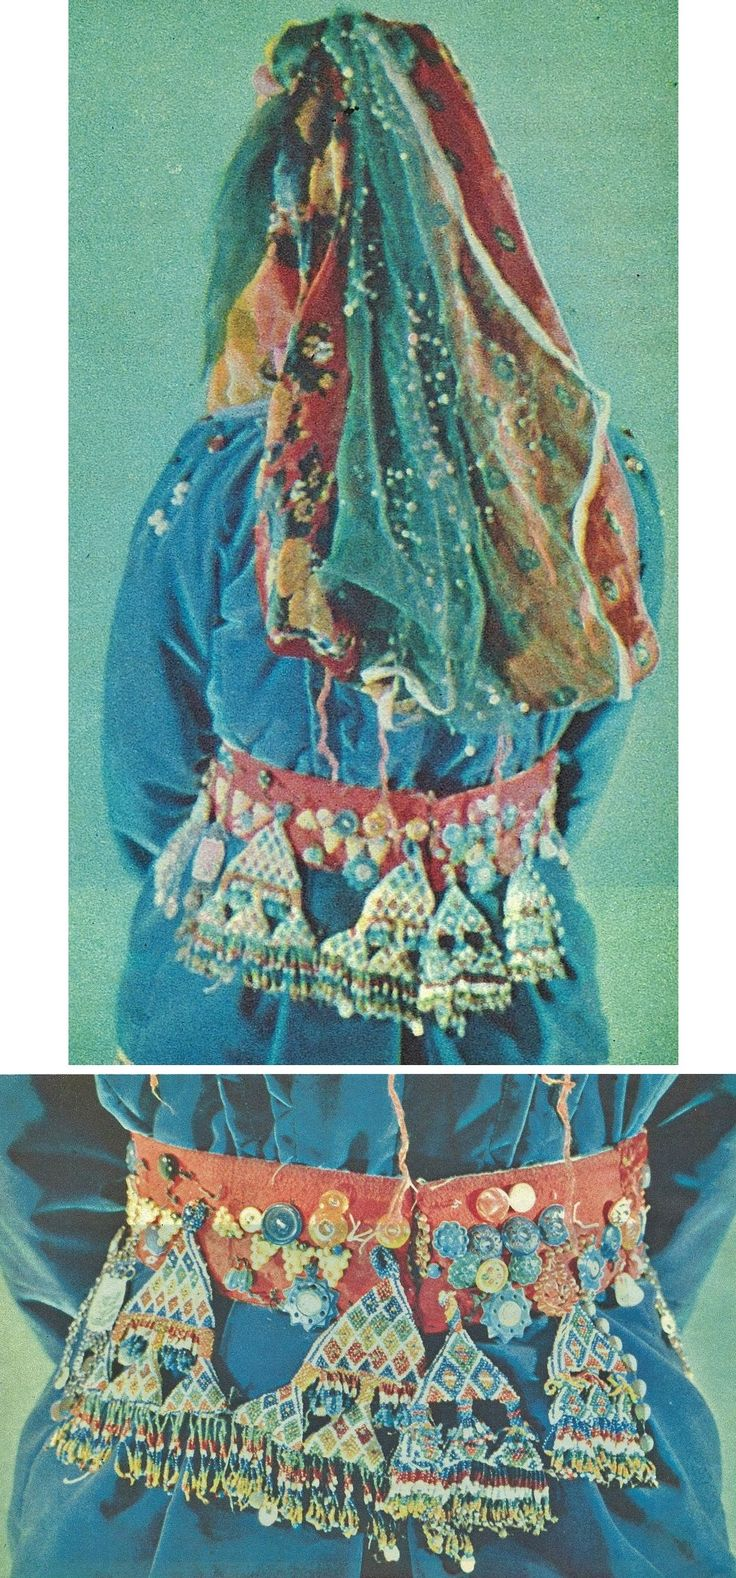 Rearview of a traditional bridal costume from Türkmen villages in the Dinar district (Afyon province), e.g. in the valley of Çölovası.  Ca. 1975.  With a close-up of the beadwork pendents adorning the bride's waist belt.  (Archives of Kavak/Antwerpen).